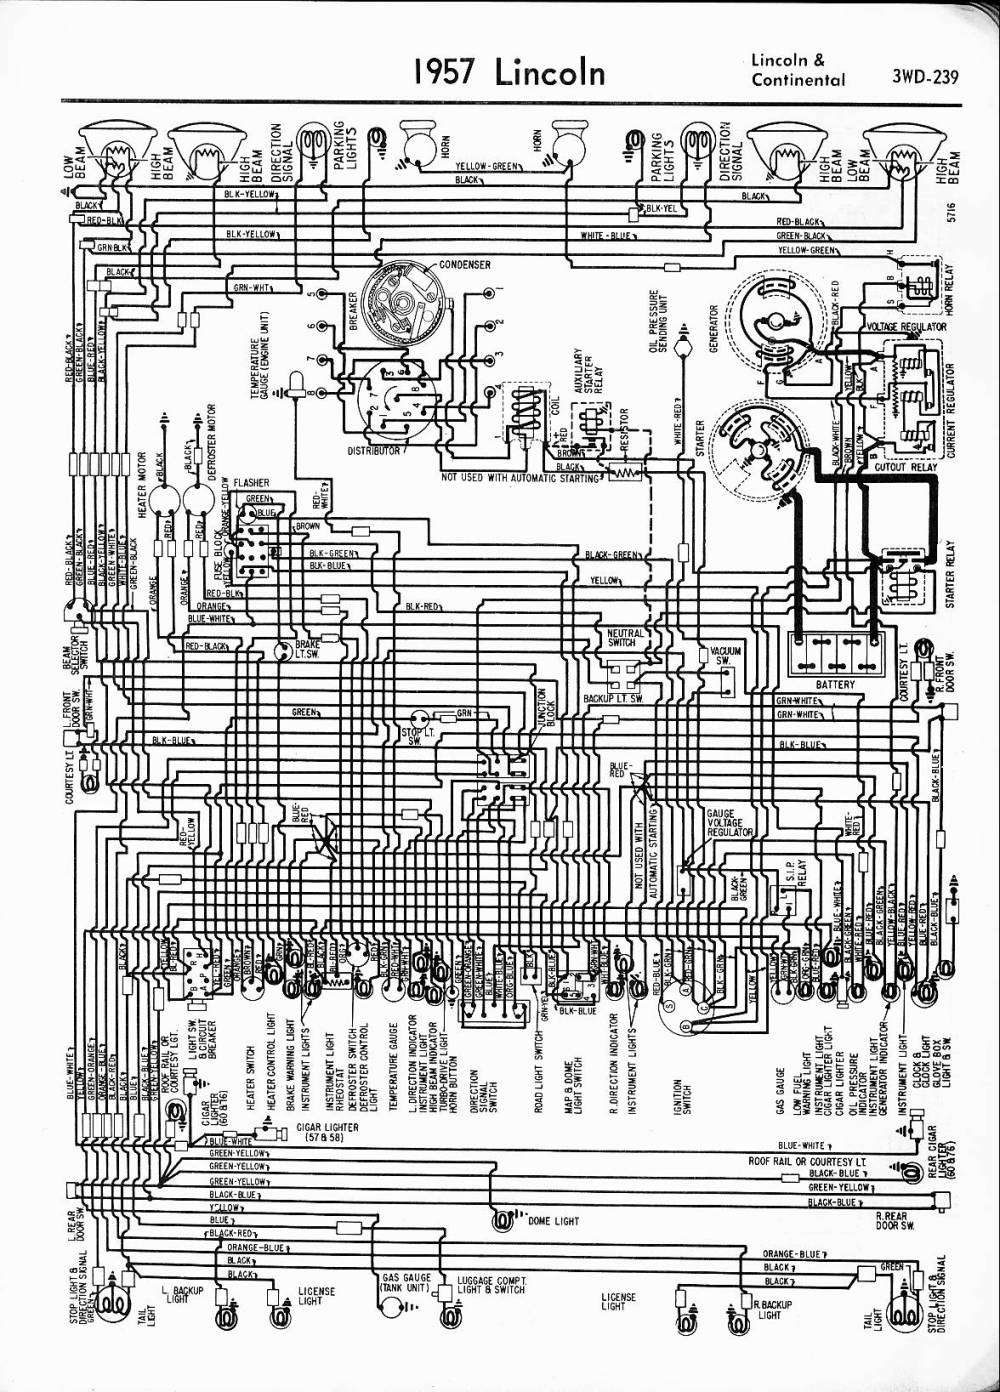 medium resolution of 1967 lincoln fuse box wiring diagram blogs rh 16 1 4 restaurant freinsheimer hof de 1966